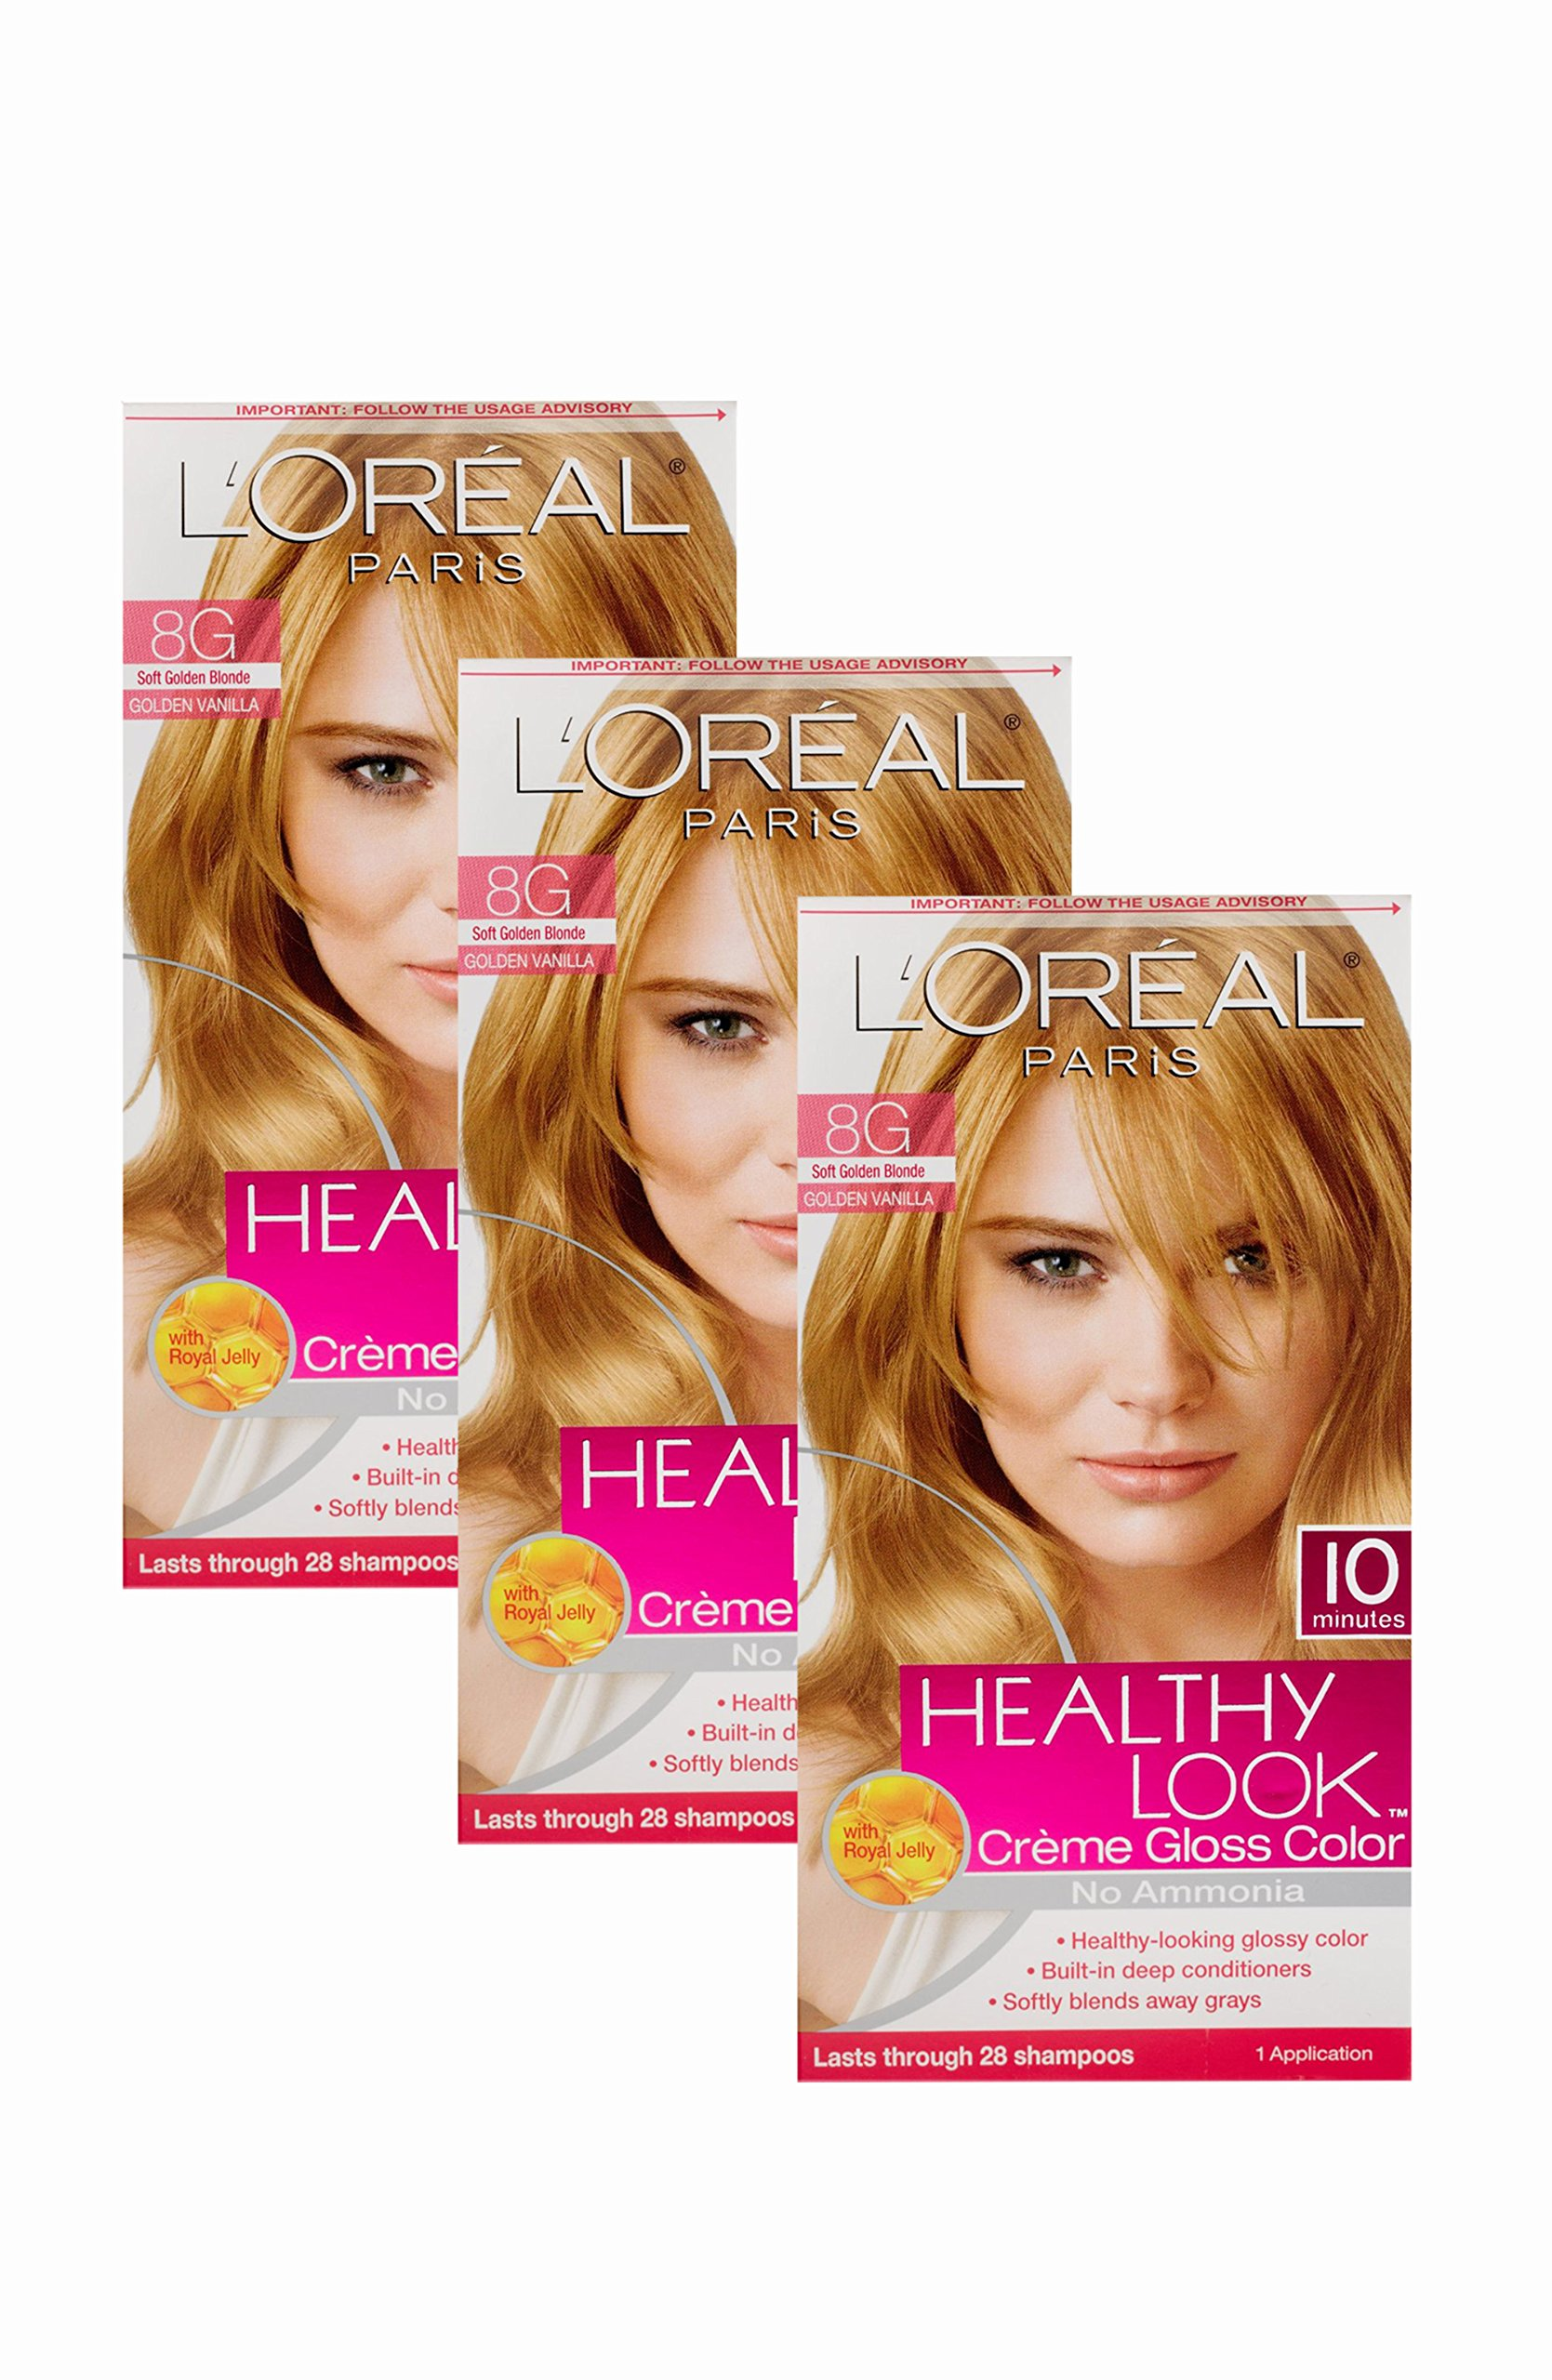 L'oreal Paris Healthy Look Crème Gloss- Soft Golden Blonde 8g (Pack of 3)